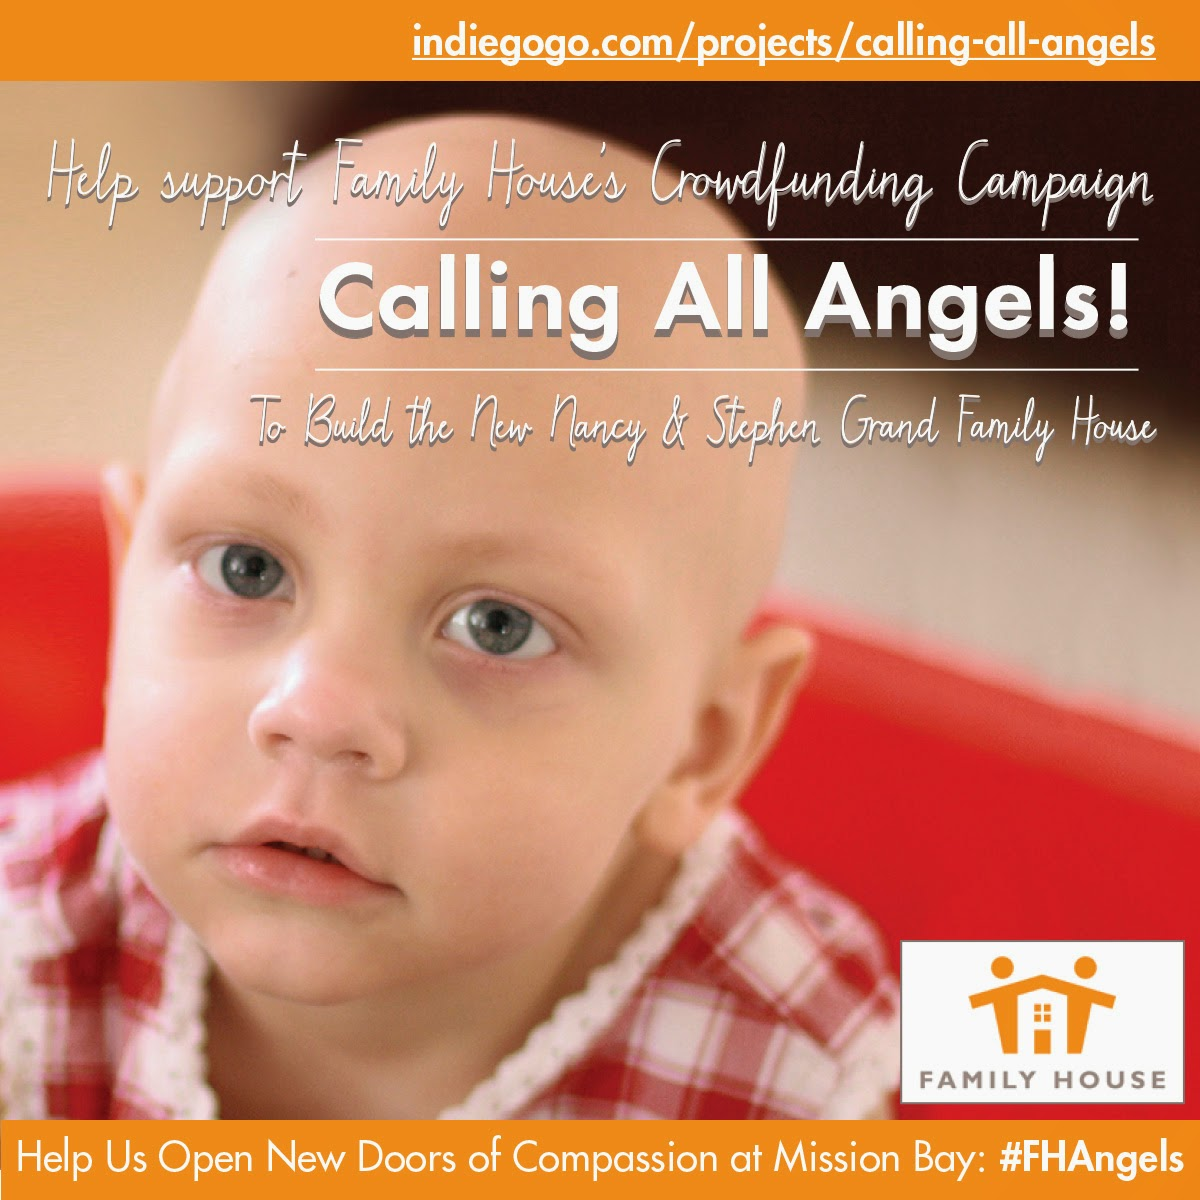 http://www.indiegogo.com/projects/calling-all-angels